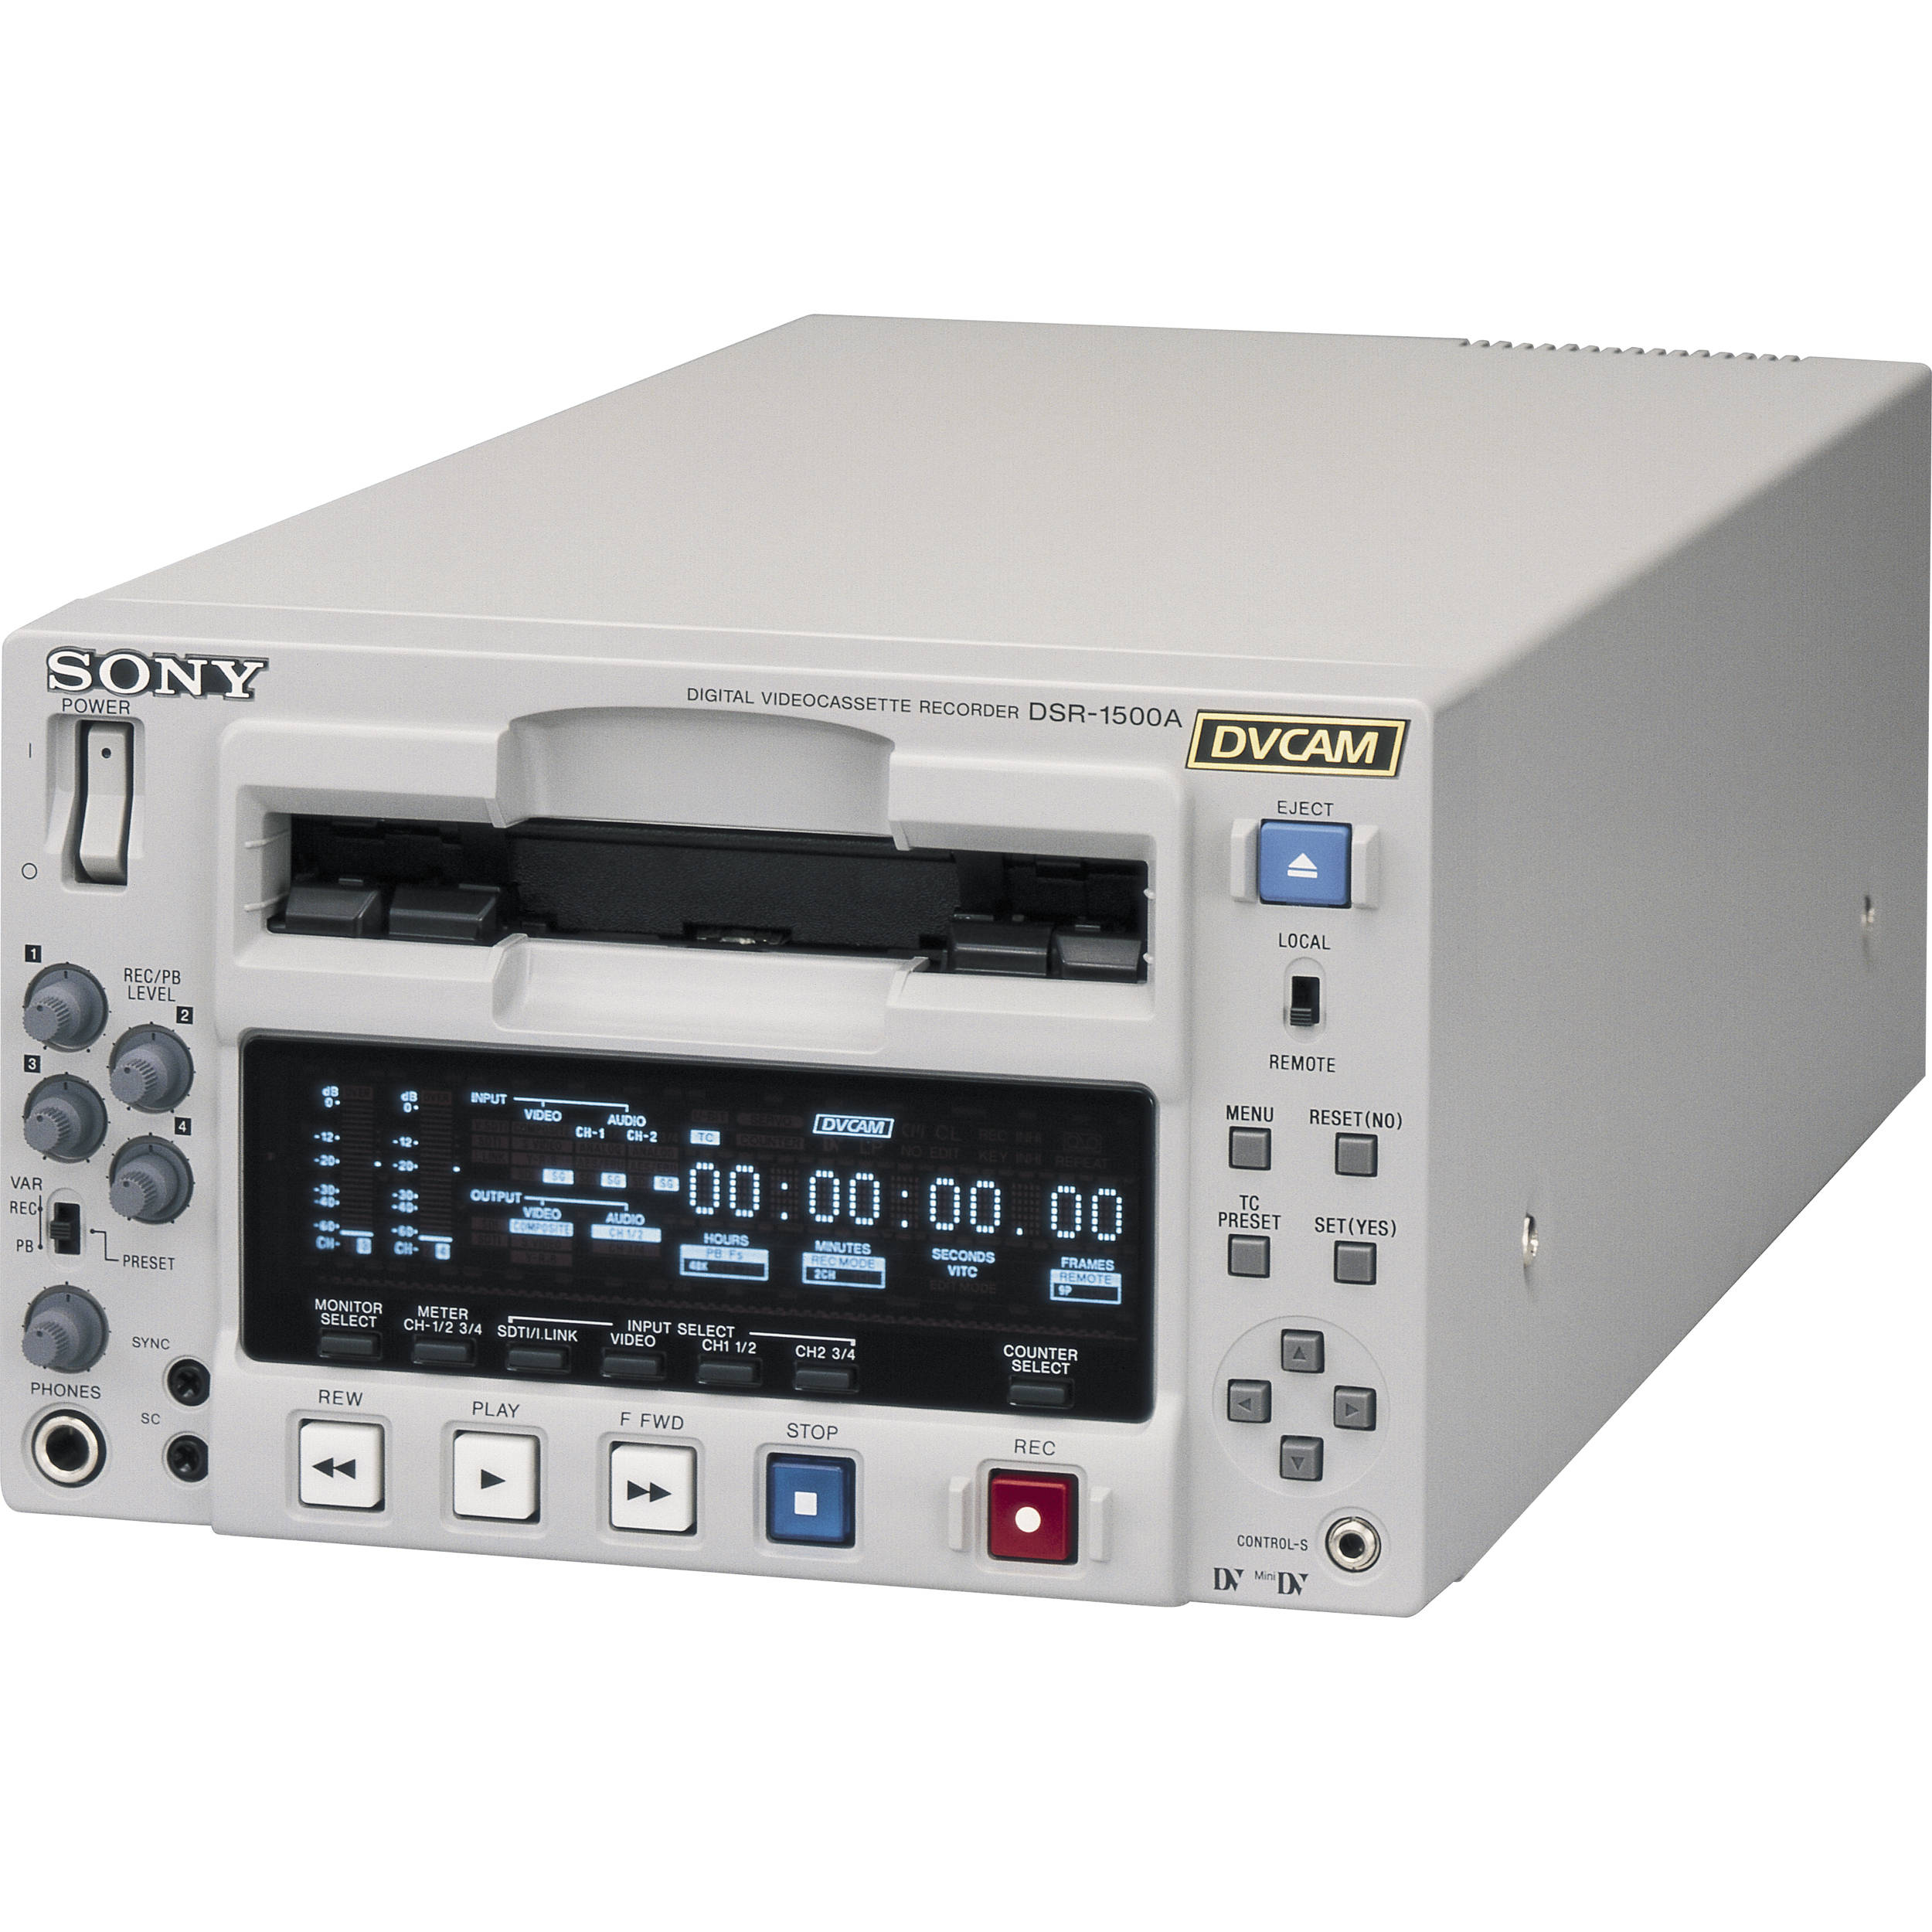 sony dsr 1500a dvcam compact player recorder dsr1500a b h photo rh bhphotovideo com Sony DVCAM Recorder Sony DV Recorder